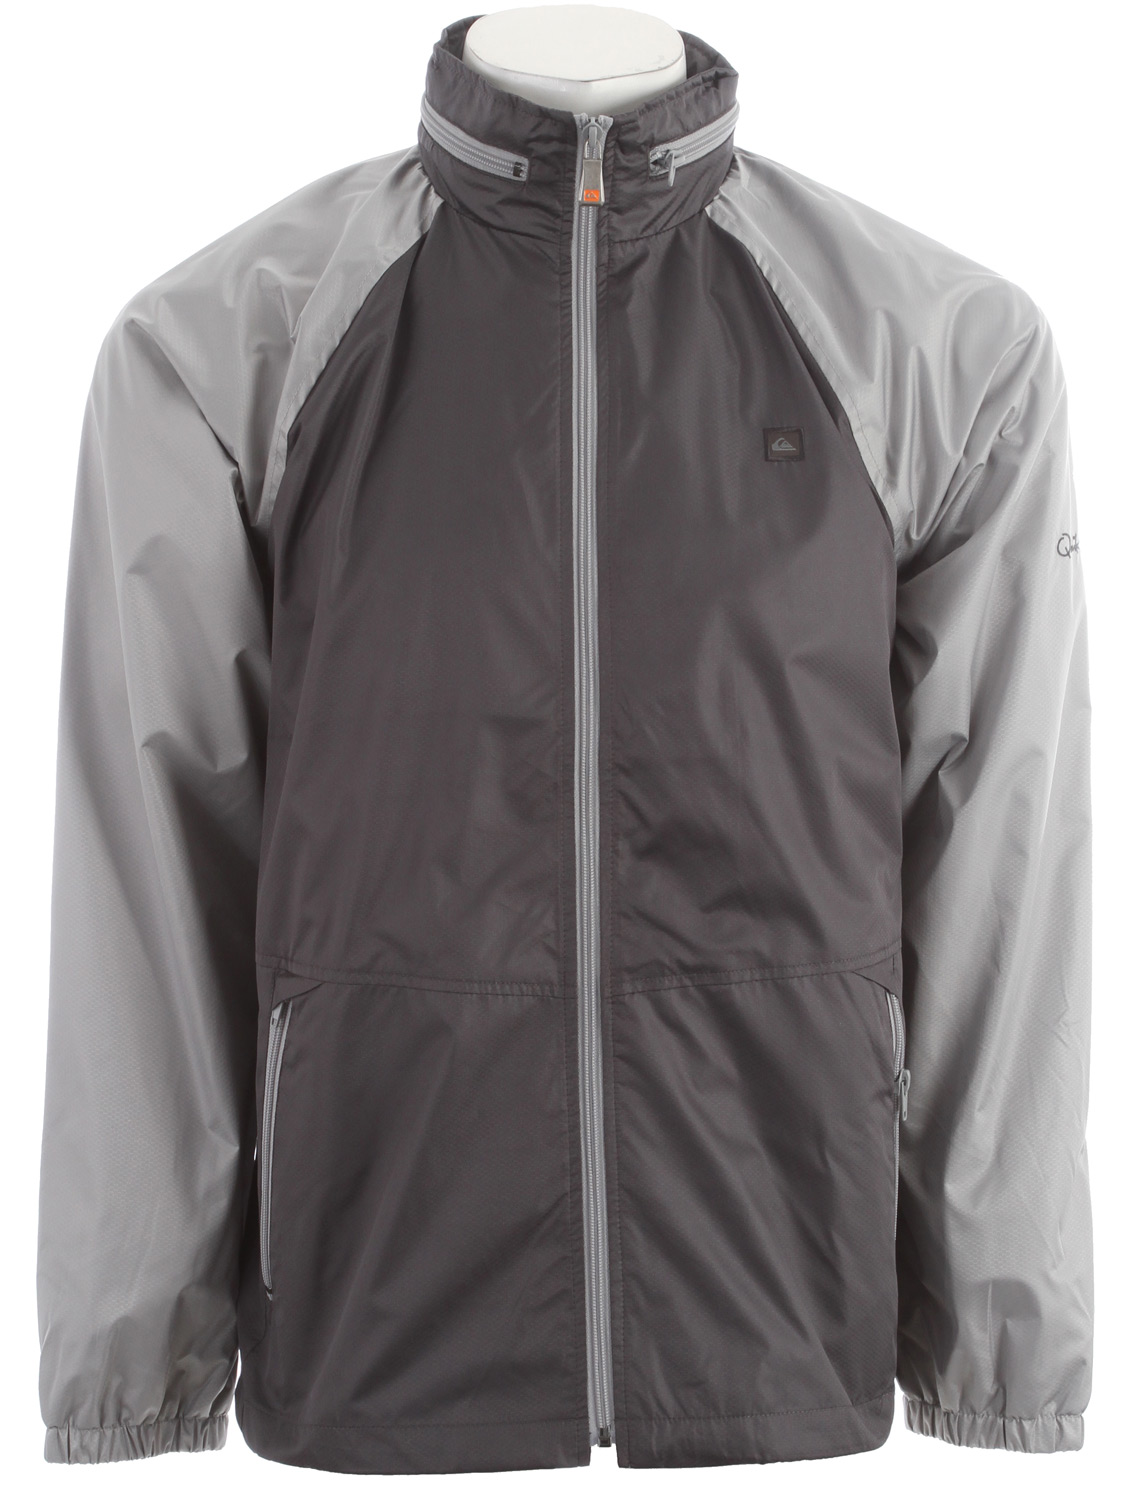 Surf Key Features of the Quiksilver Shell Shock 2 Windbreaker:  Textured polyester windbreaker with mesh lining, contrast zippers and packable hood 100% polyester - $43.95